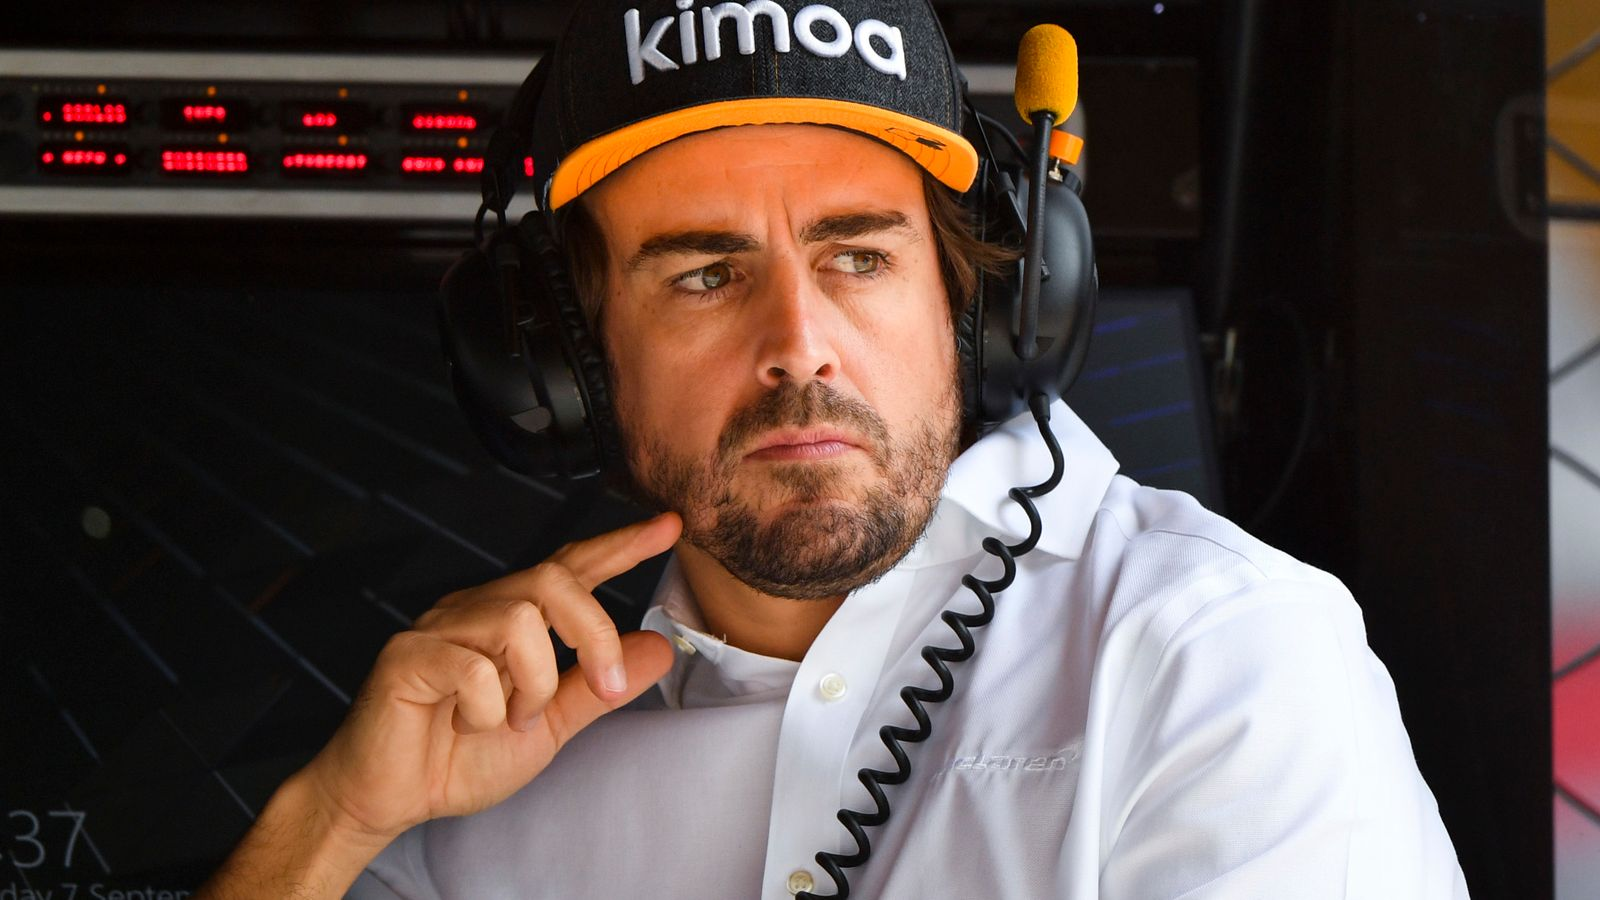 Fernando Alonso to join McLaren for Indy 500 in bid for triple crown